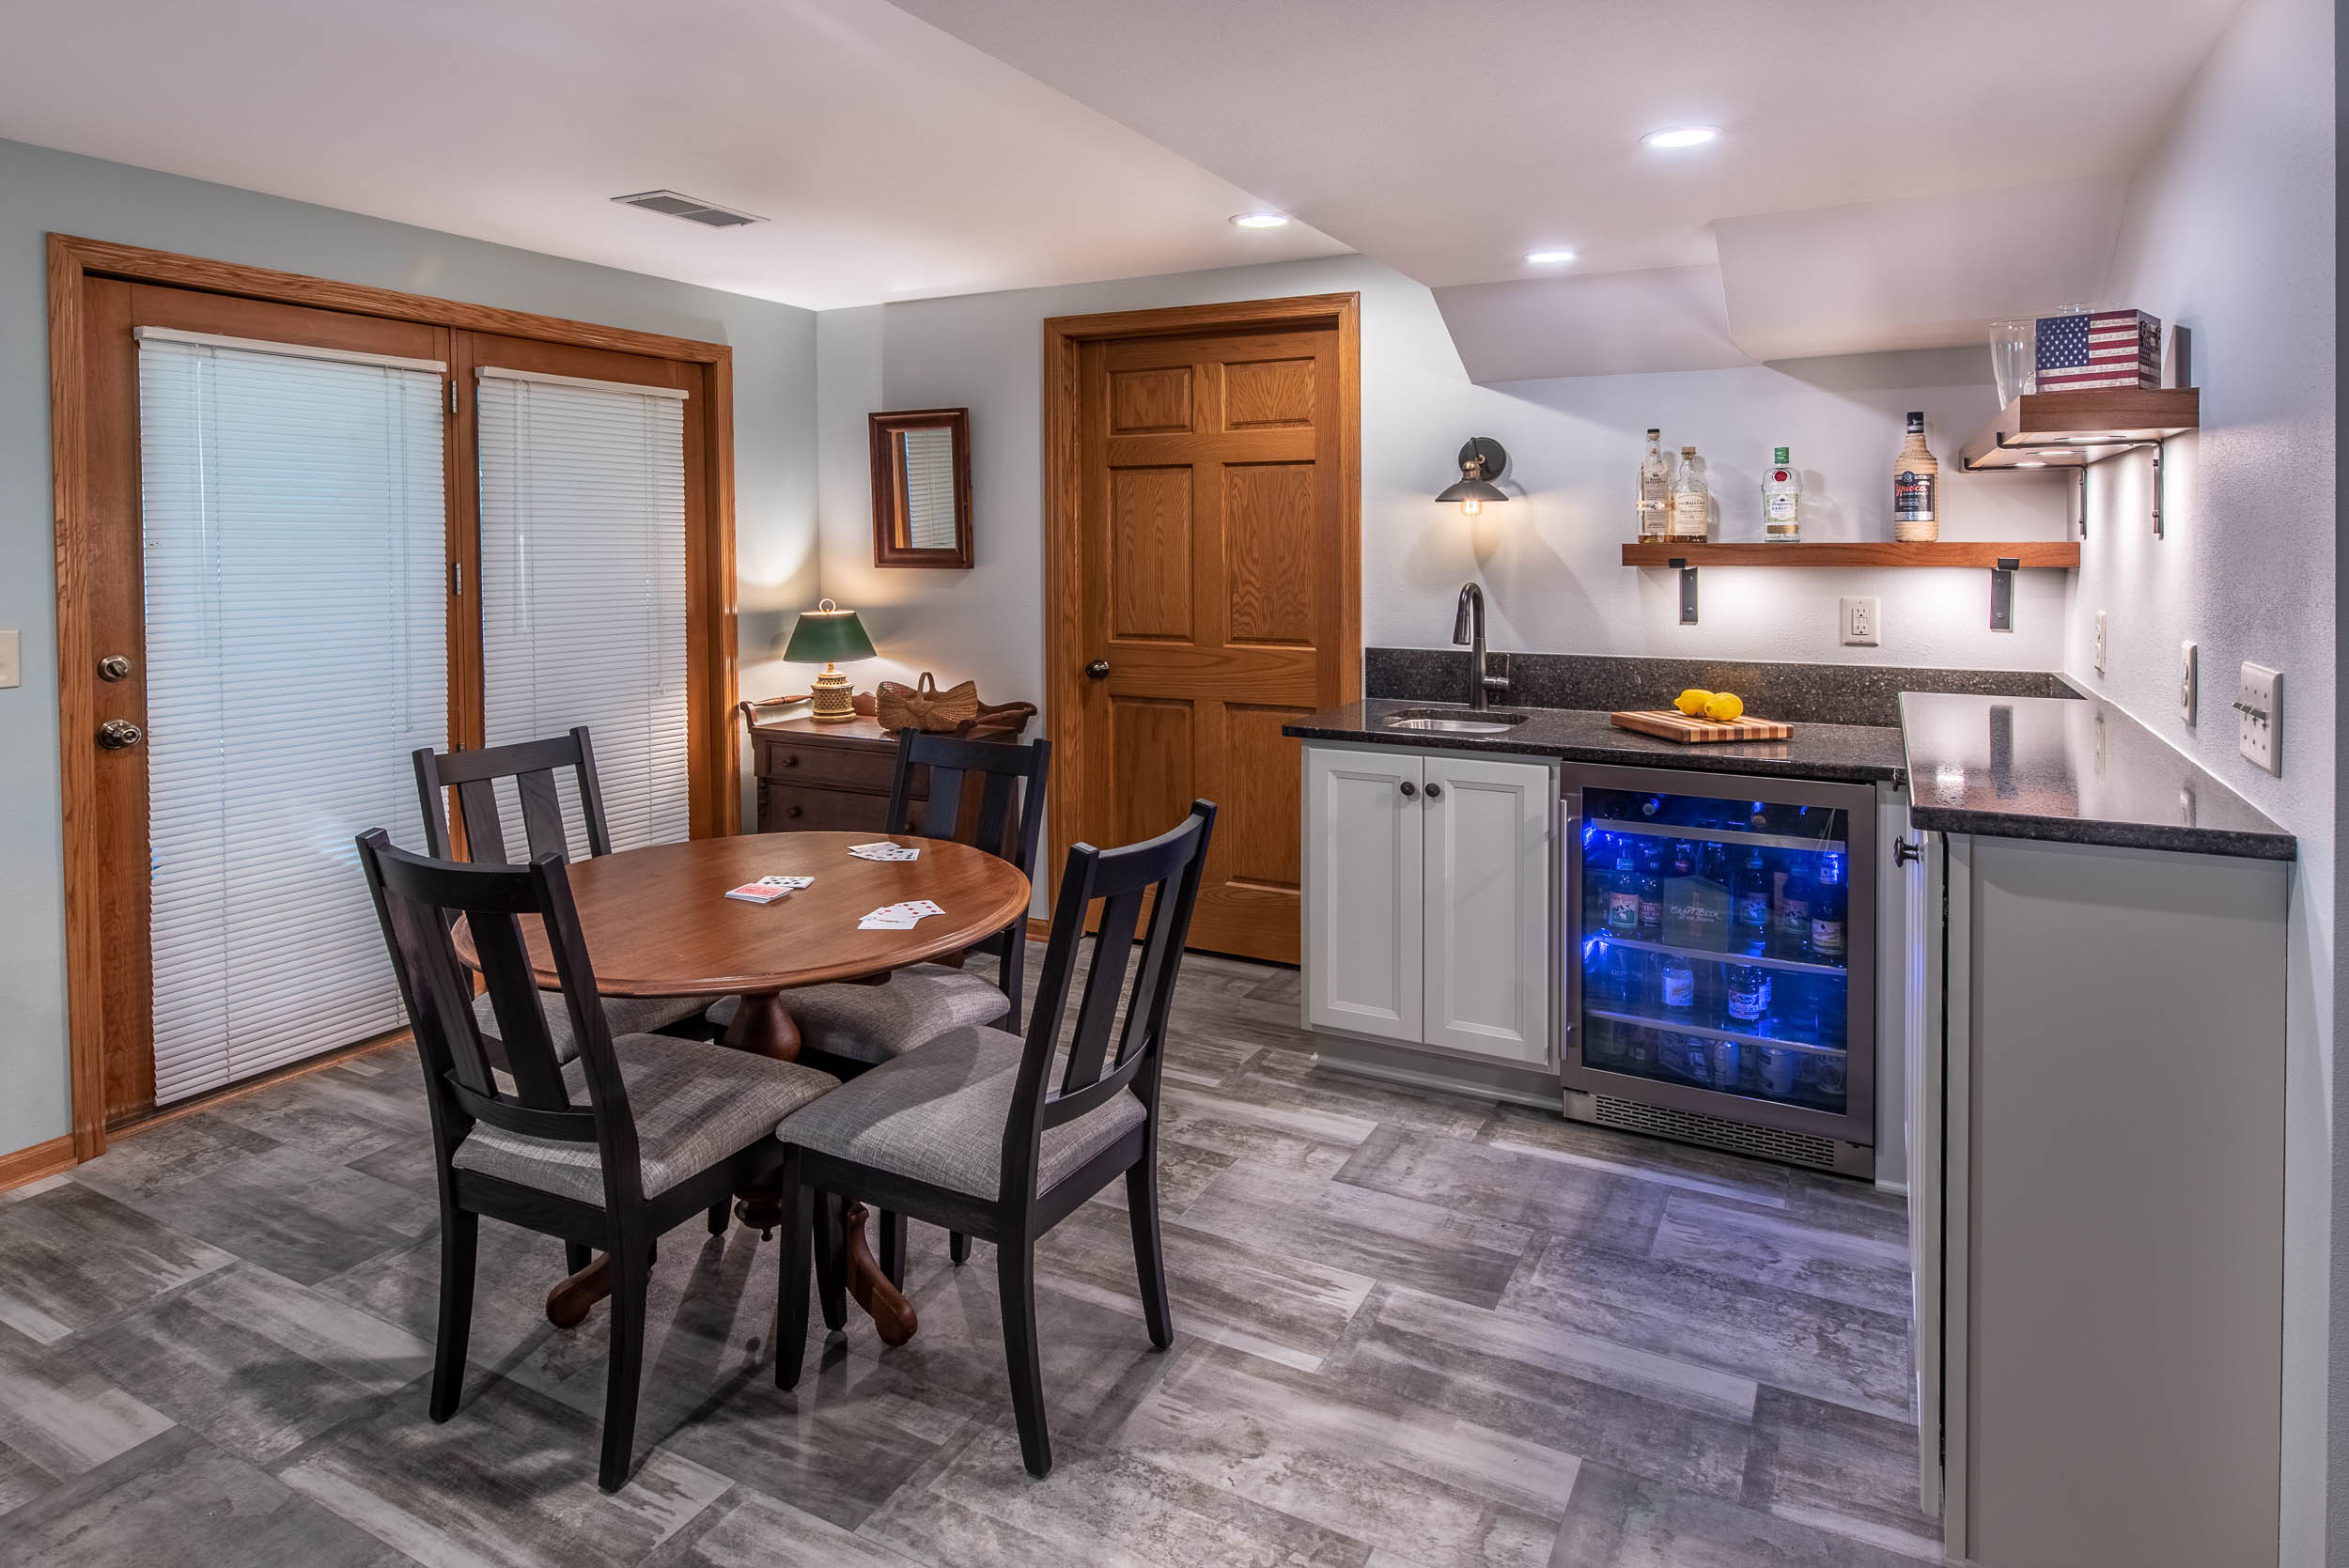 The Bar Has a Built In Beverage Center For Entertaining.